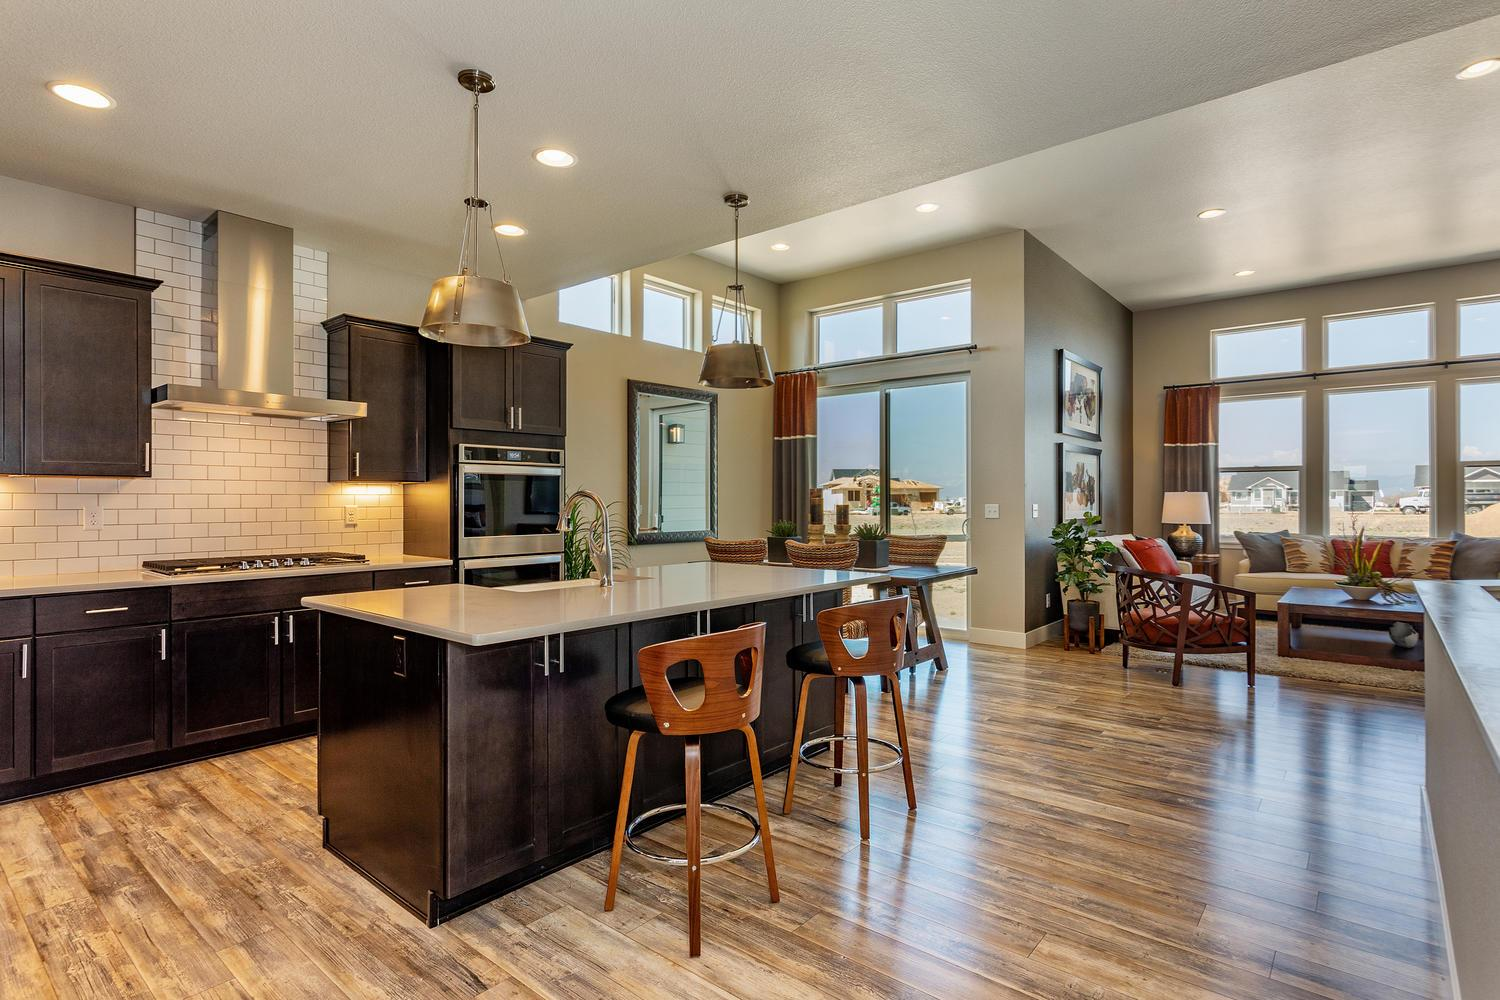 Kitchen featured in the Pateros Creek By Hartford Homes in Fort Collins-Loveland, CO